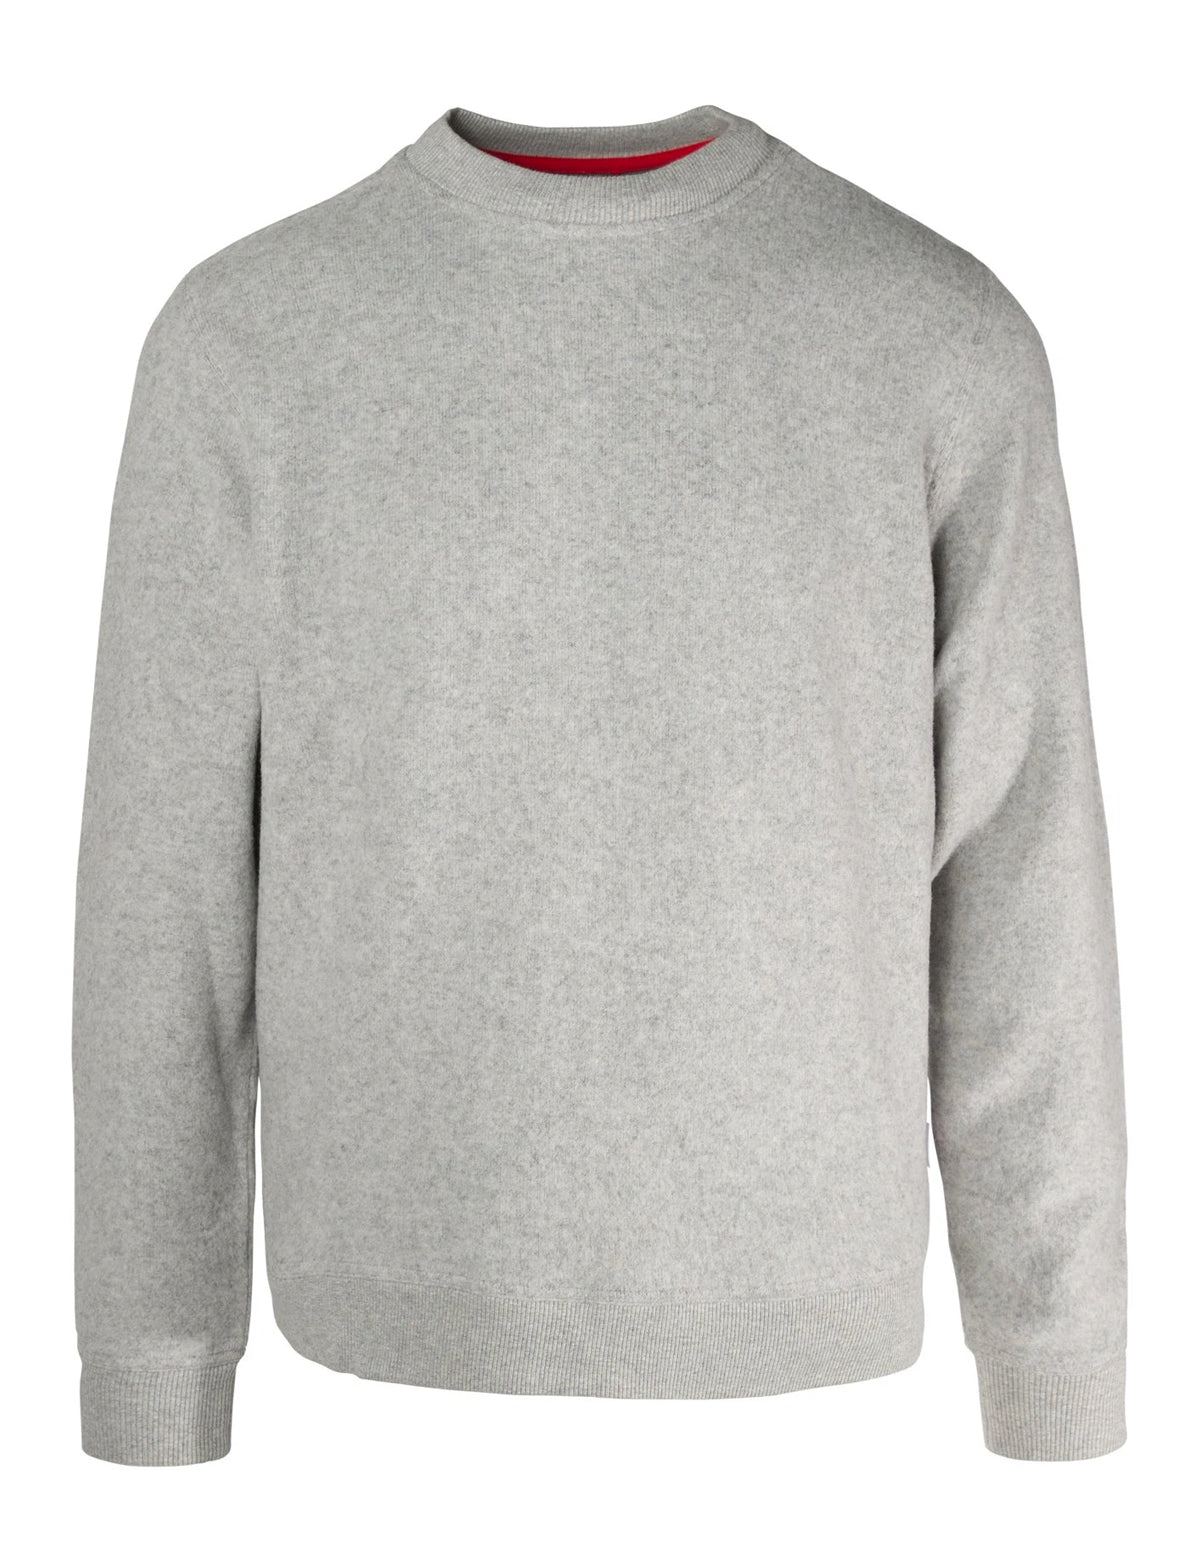 Topo Designs Men's Global Sweater Grey